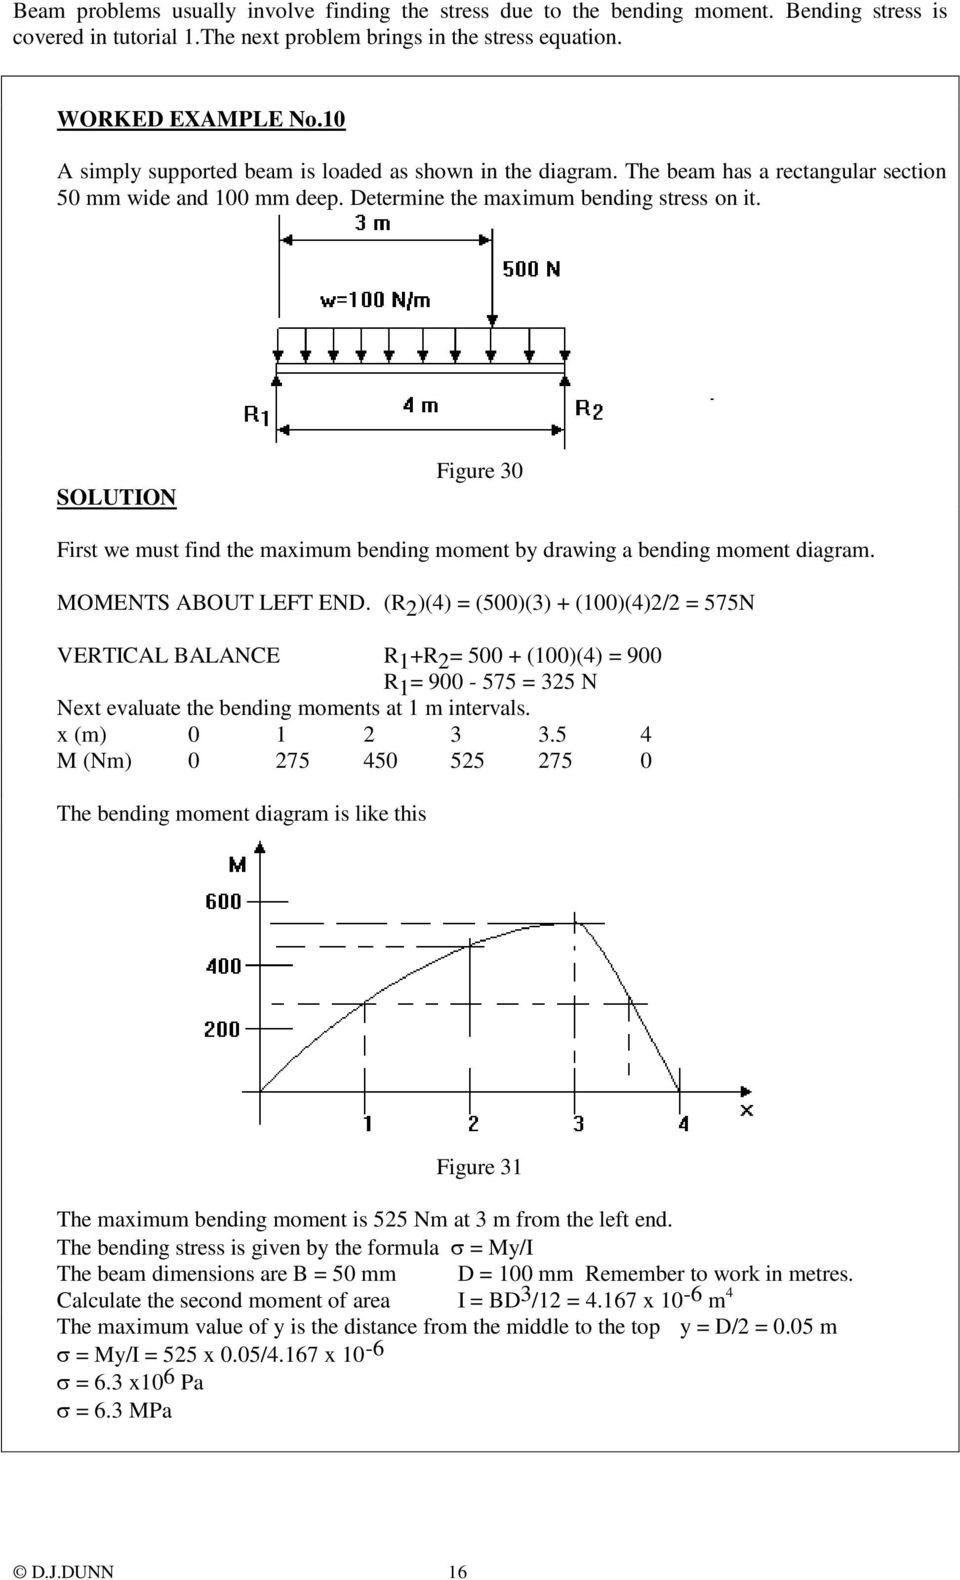 Mechanics Of Solids Beams Tutorial 2 Shear Force And Bending Beam Moment Diagrams Solution Figure 30 First We Must Find The Maximum By Drawing A